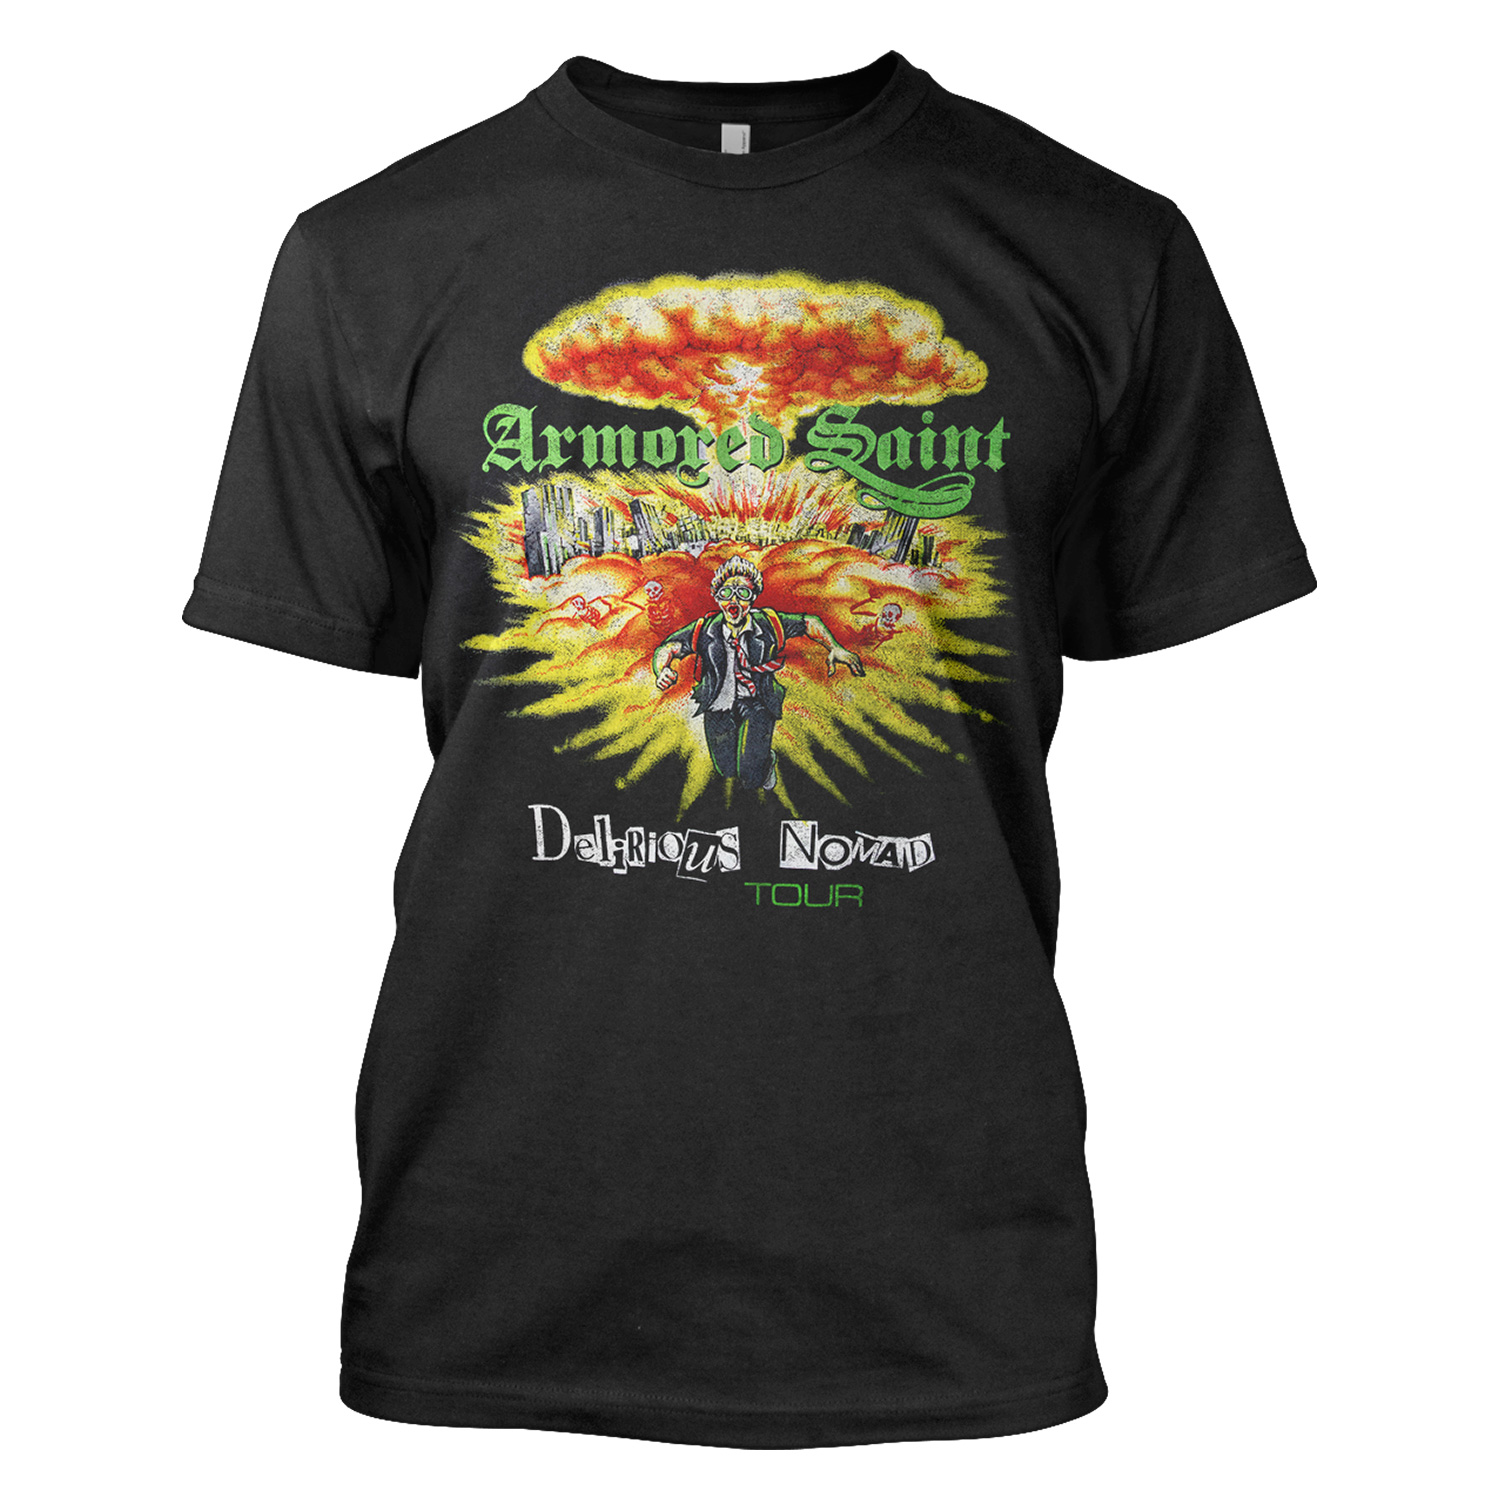 armored saint quotdelirious nomad tour 87quot tshirt armored